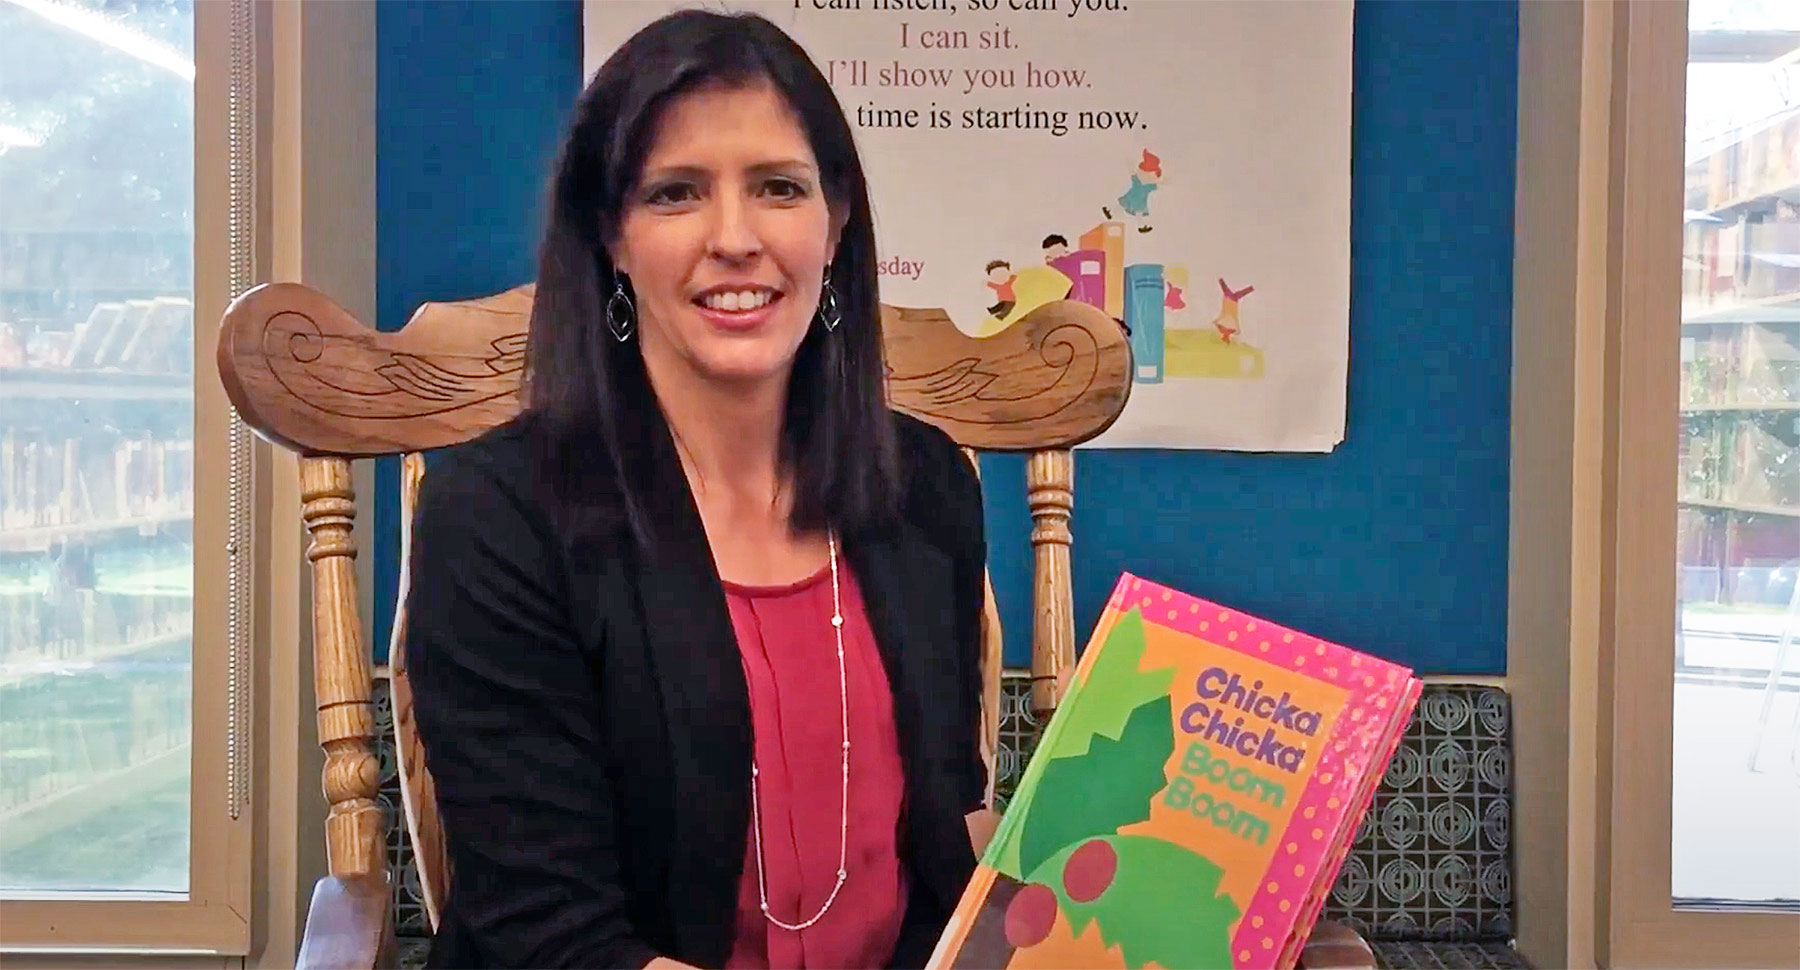 CGSC Foundation Director of Operations Lora Morgan reads Chicka Chicka Boom Boom as part of the Combined Arms Research Library's Community Reads program.